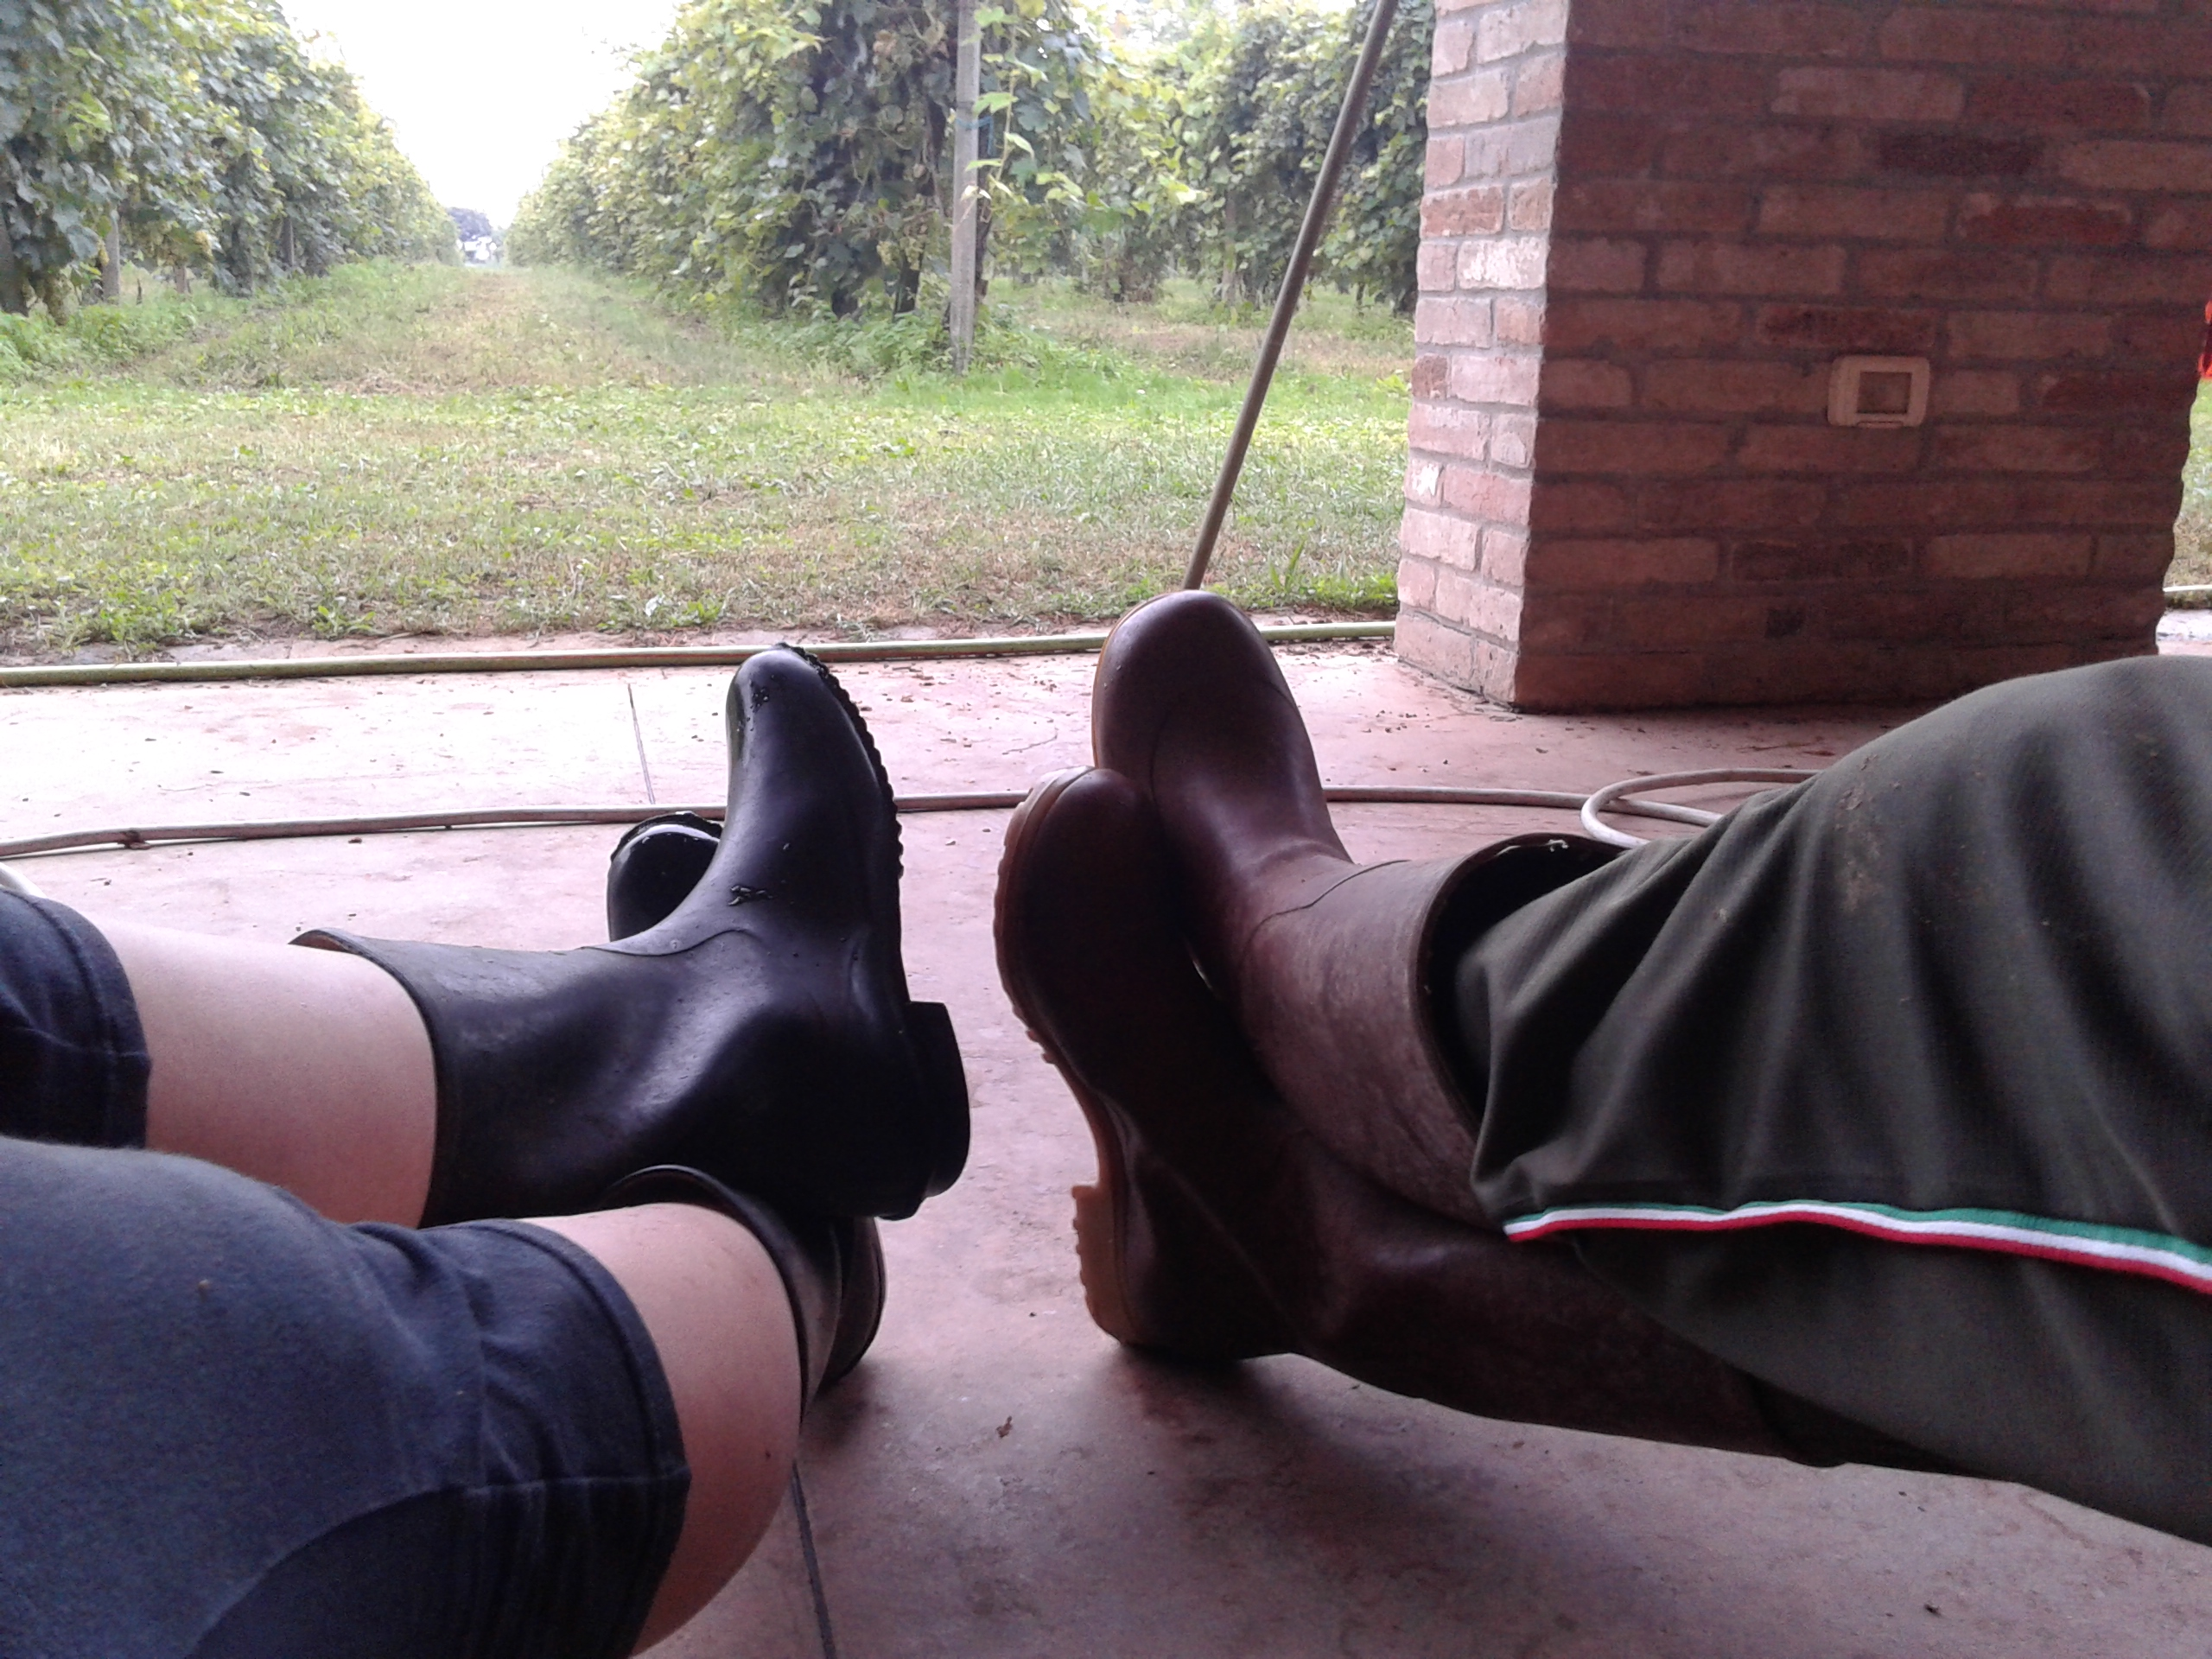 Reka and Pier's boots